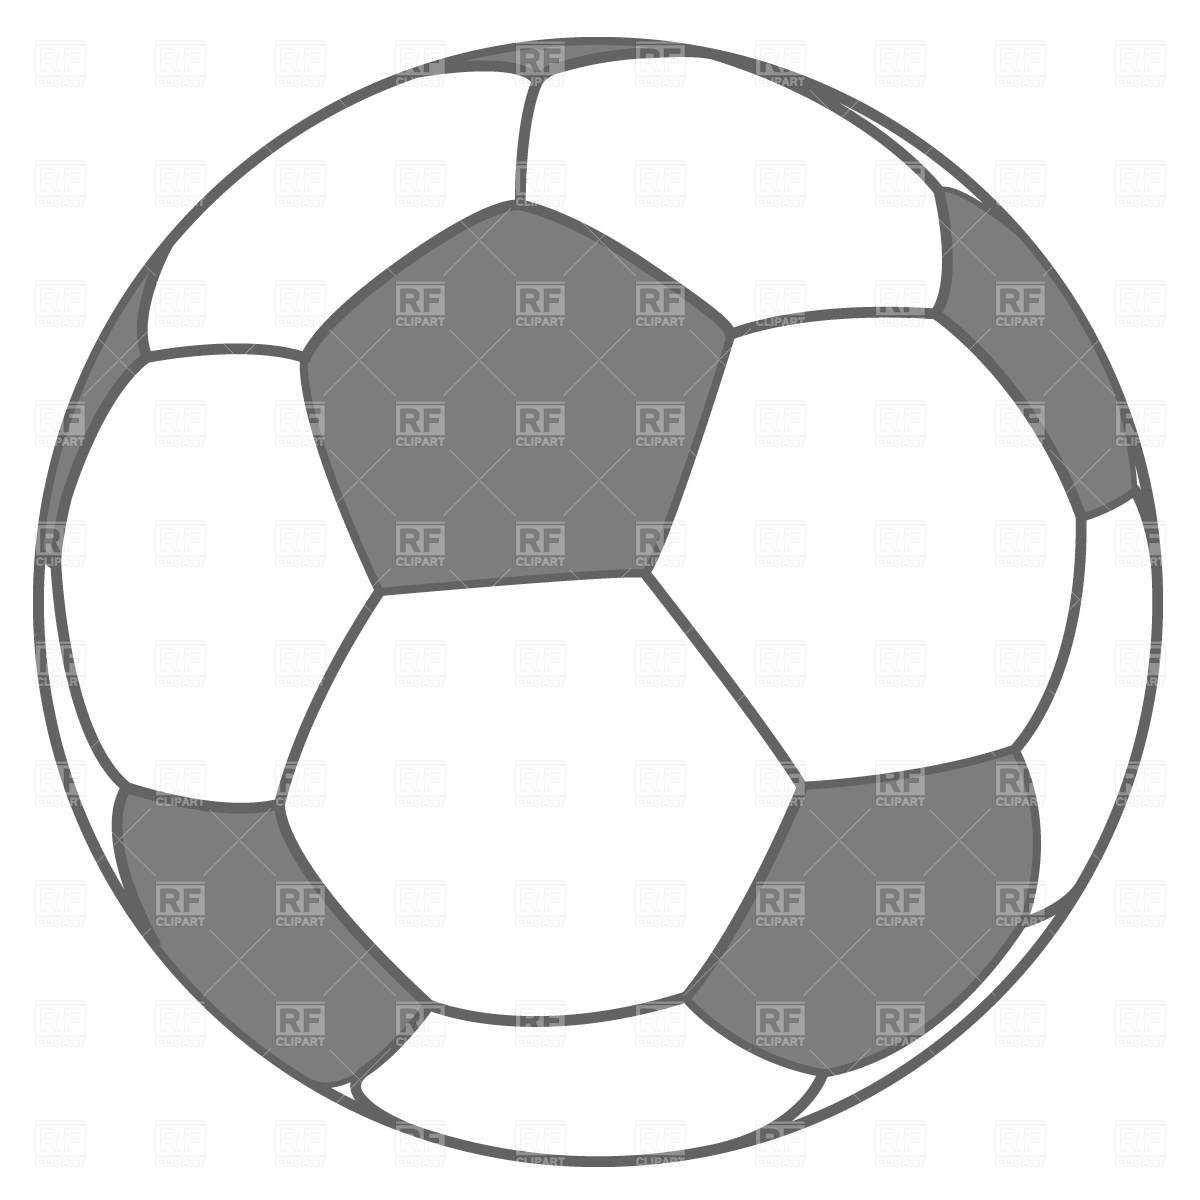 Soccer ball clipart eps jpg library download Soccer ball Vector Image #752 – RFclipart jpg library download